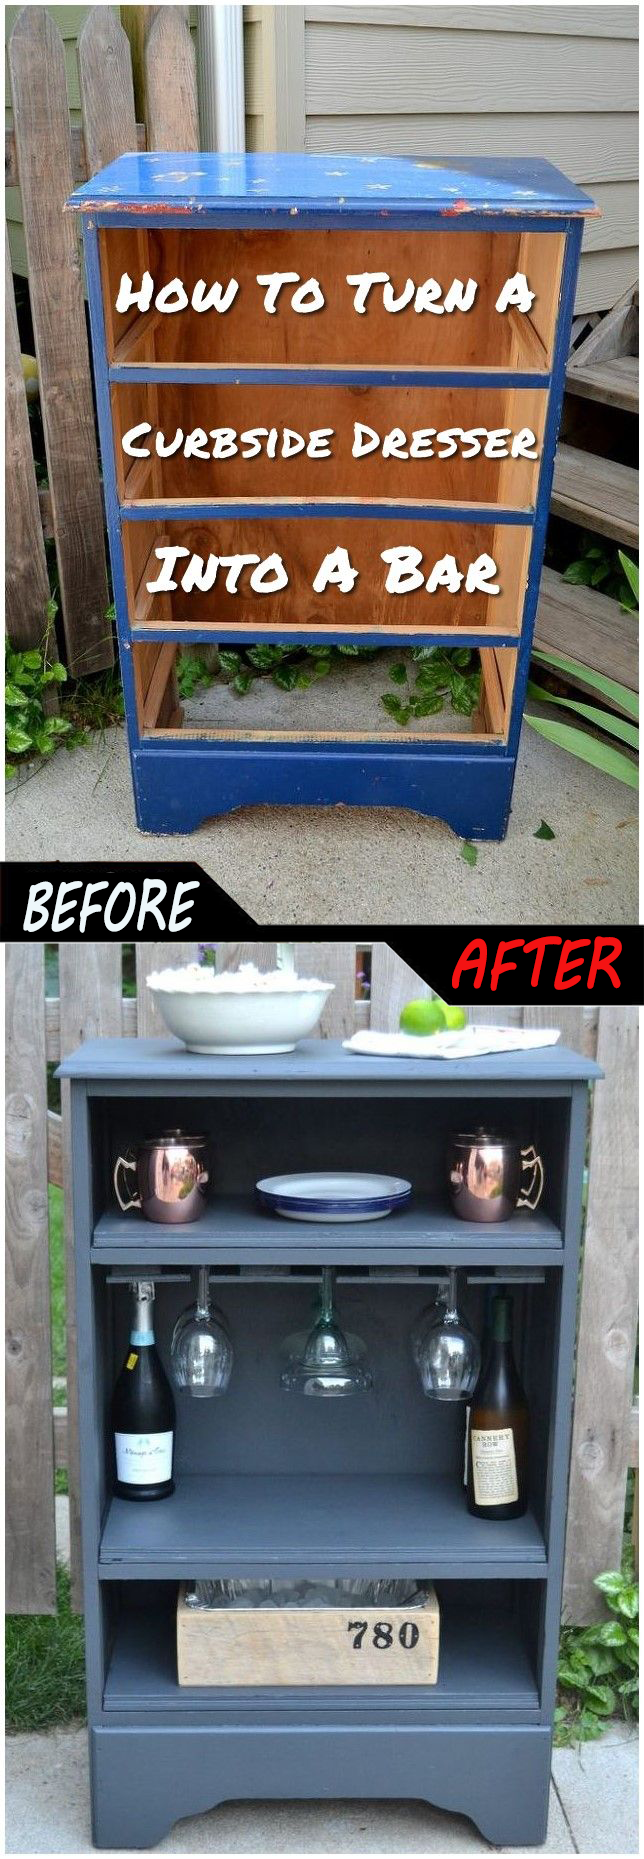 10 Excellent Furniture Makeover DIYs - Furniture makeover diy, Furniture makeover, Easy home decor, Diy furniture, Home decor tips, Decorating on a budget - 1  DIY Side table That little cabinet looks fantastic  Woah! That cabinet is all kinds of insane, but I love it hope you also like it  Found it HERE 1 DIY TV stand makeover Give your old TV stand…